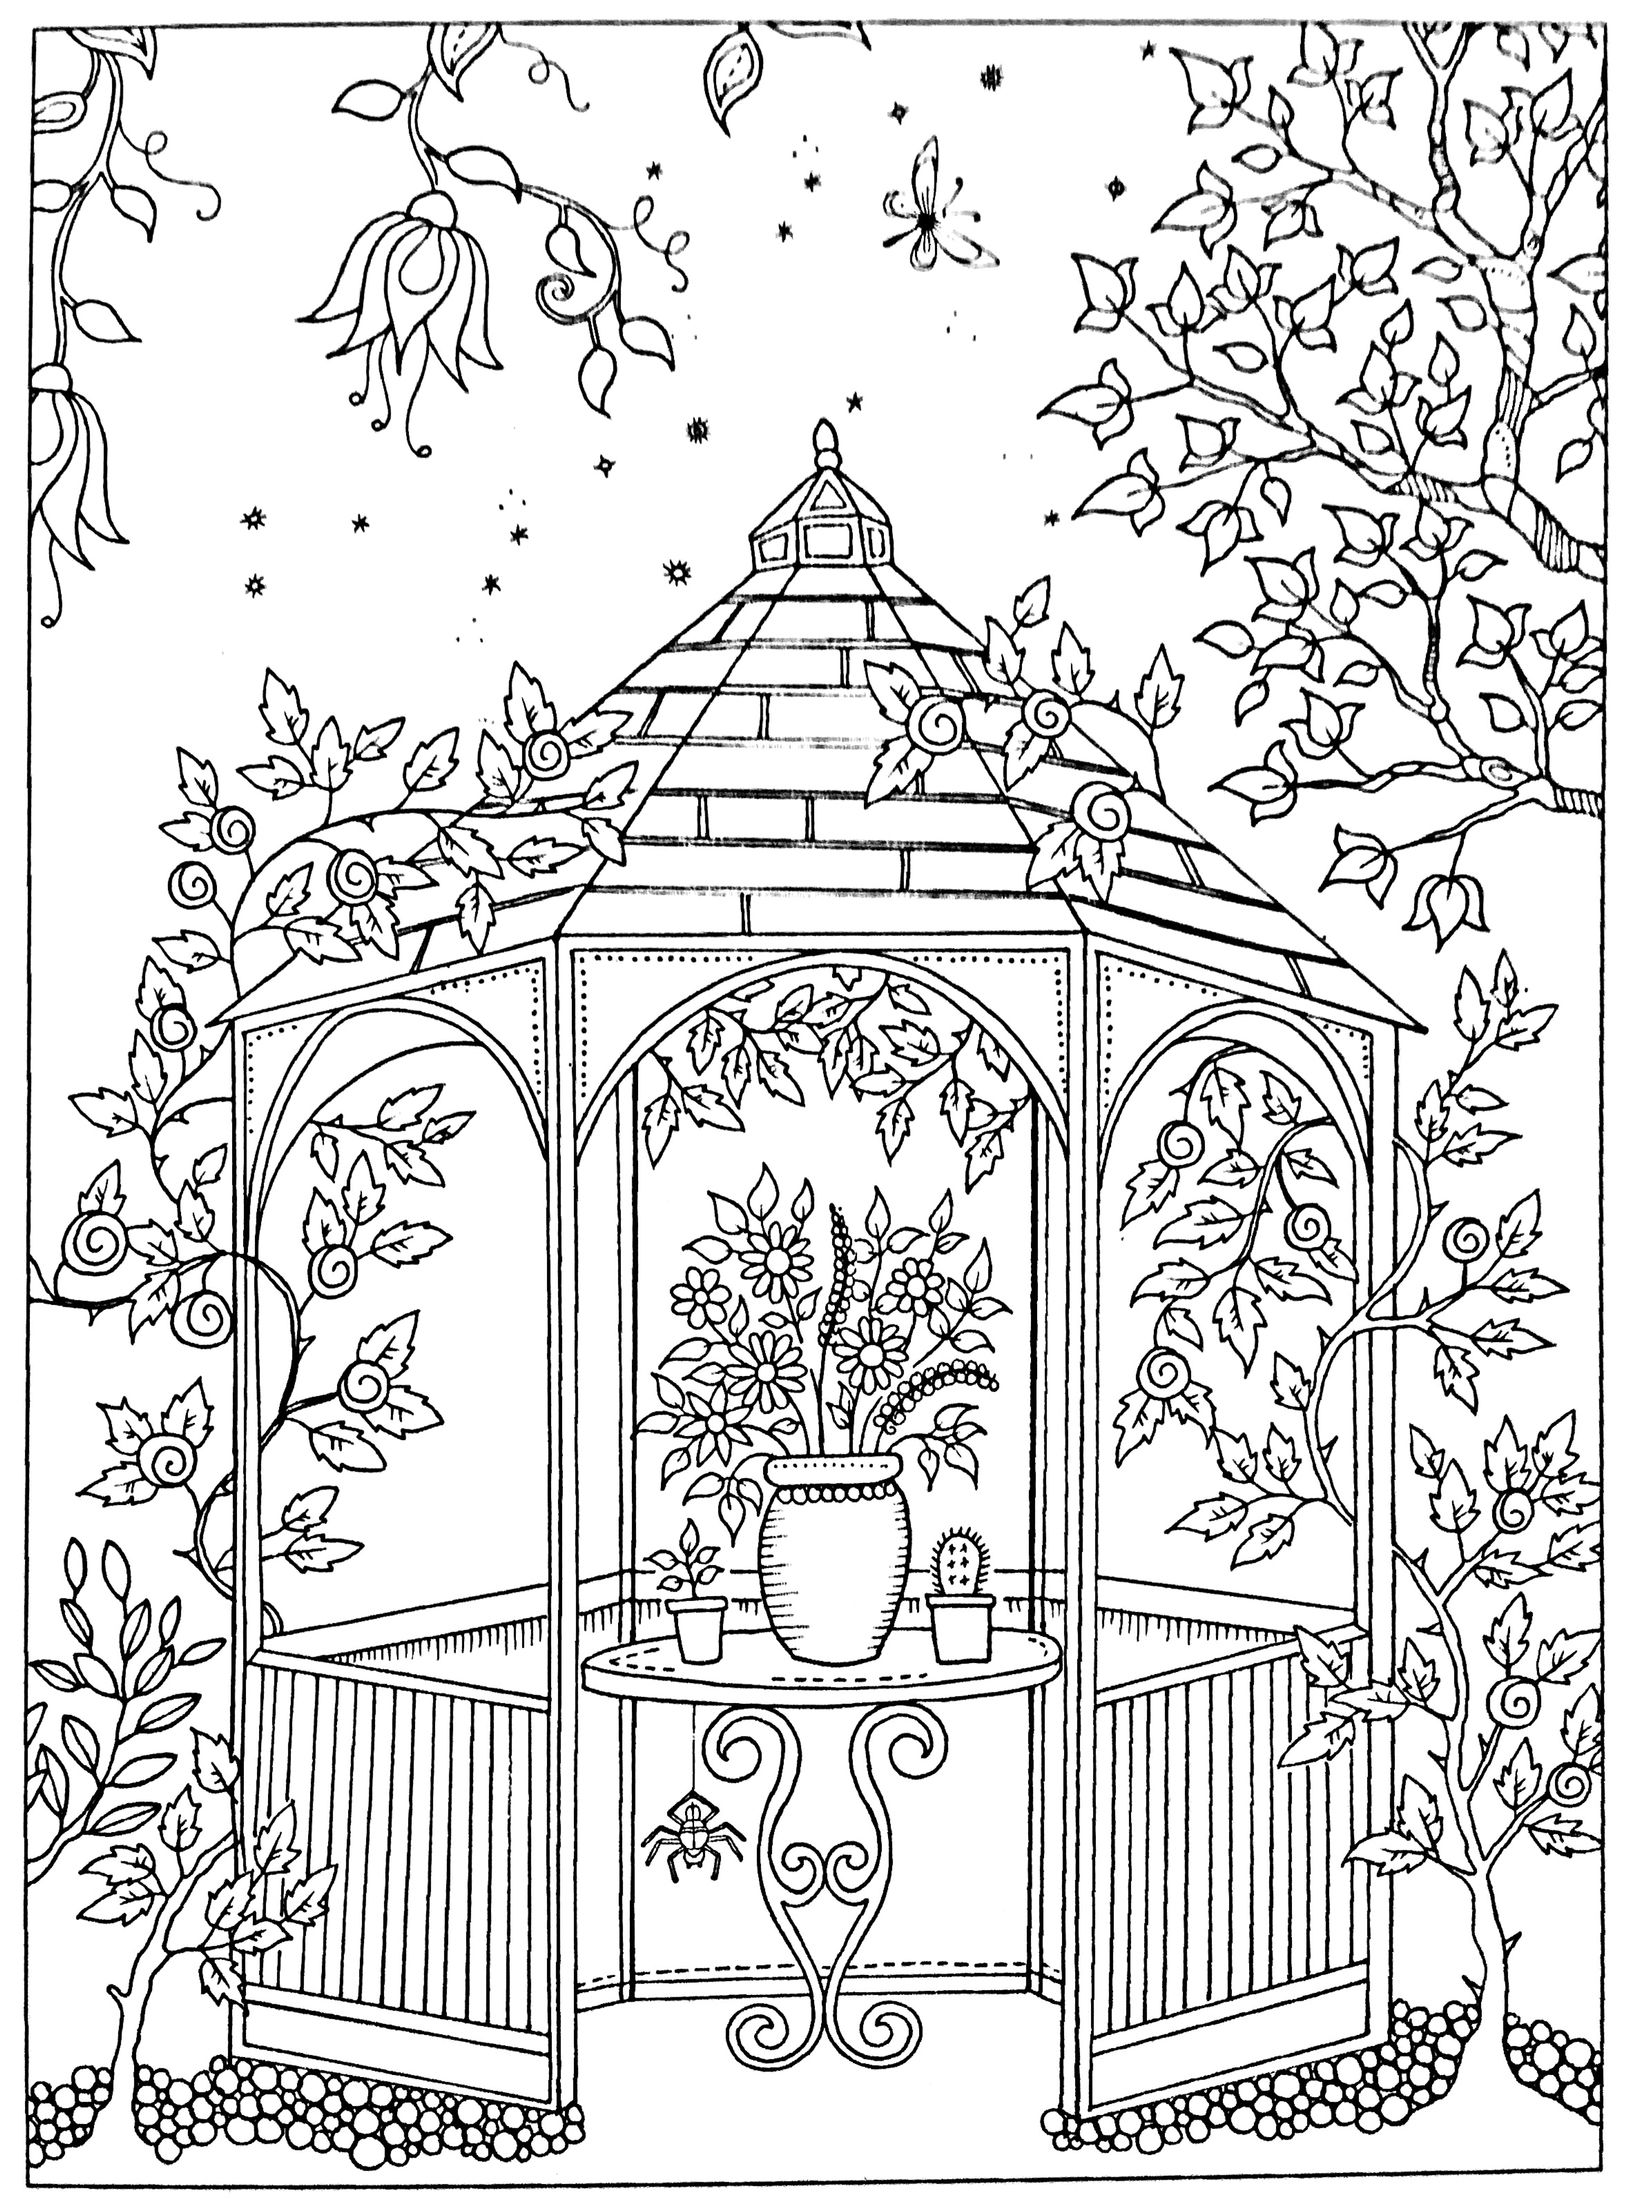 - Free Adult Coloring Page Secret Garden Garden Coloring Pages